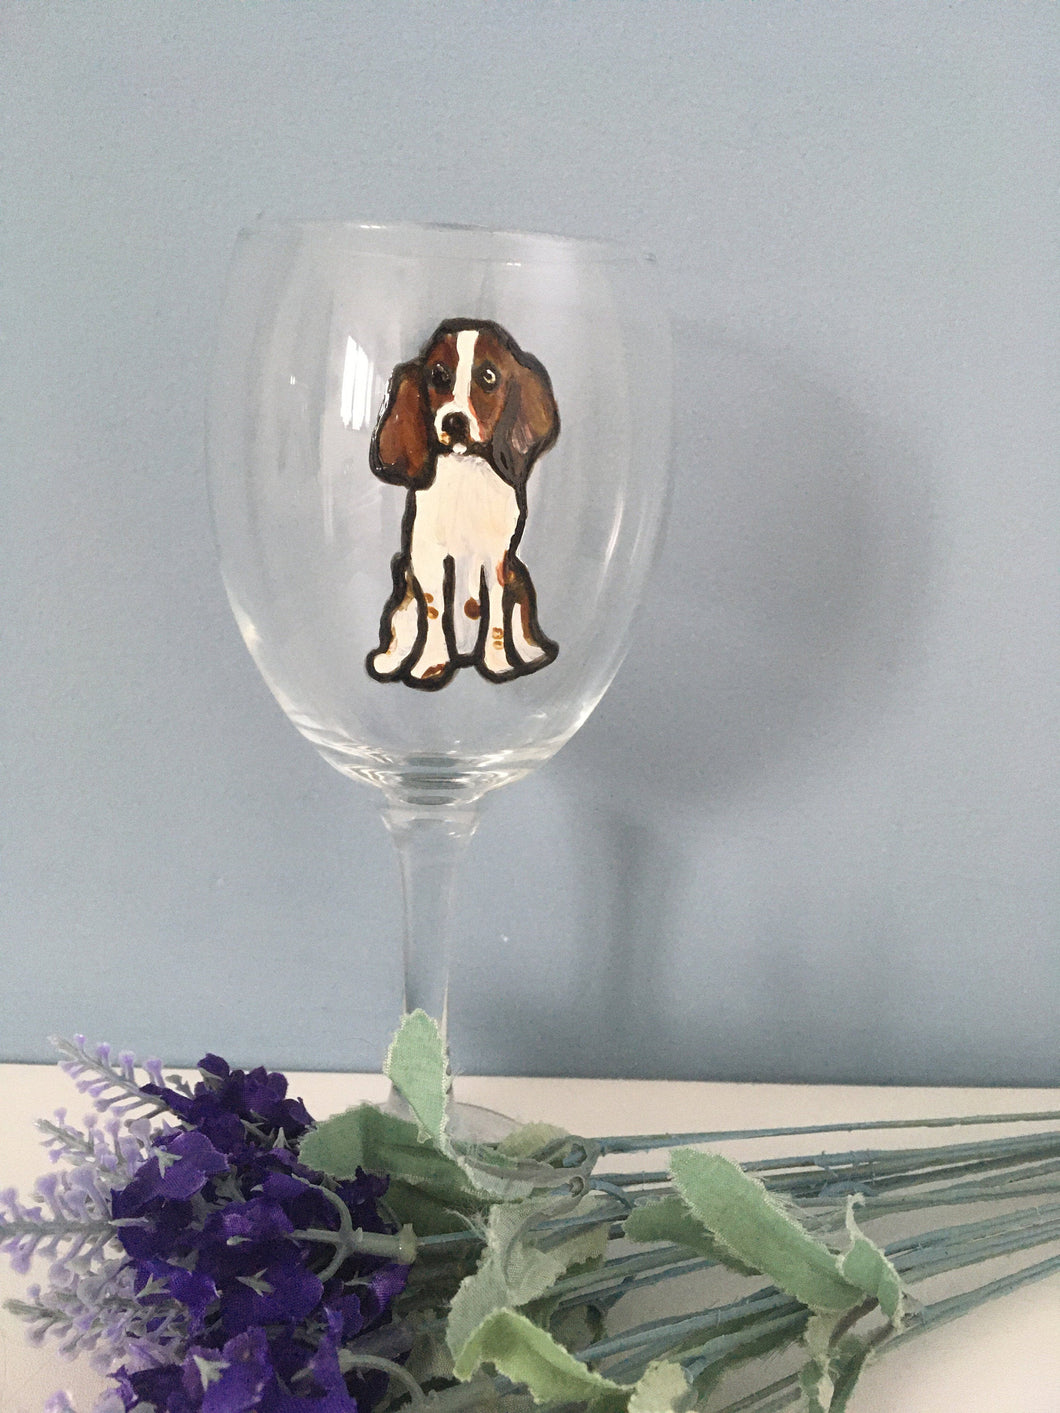 Springer spaniel, wine glass, gin glass, gift idea